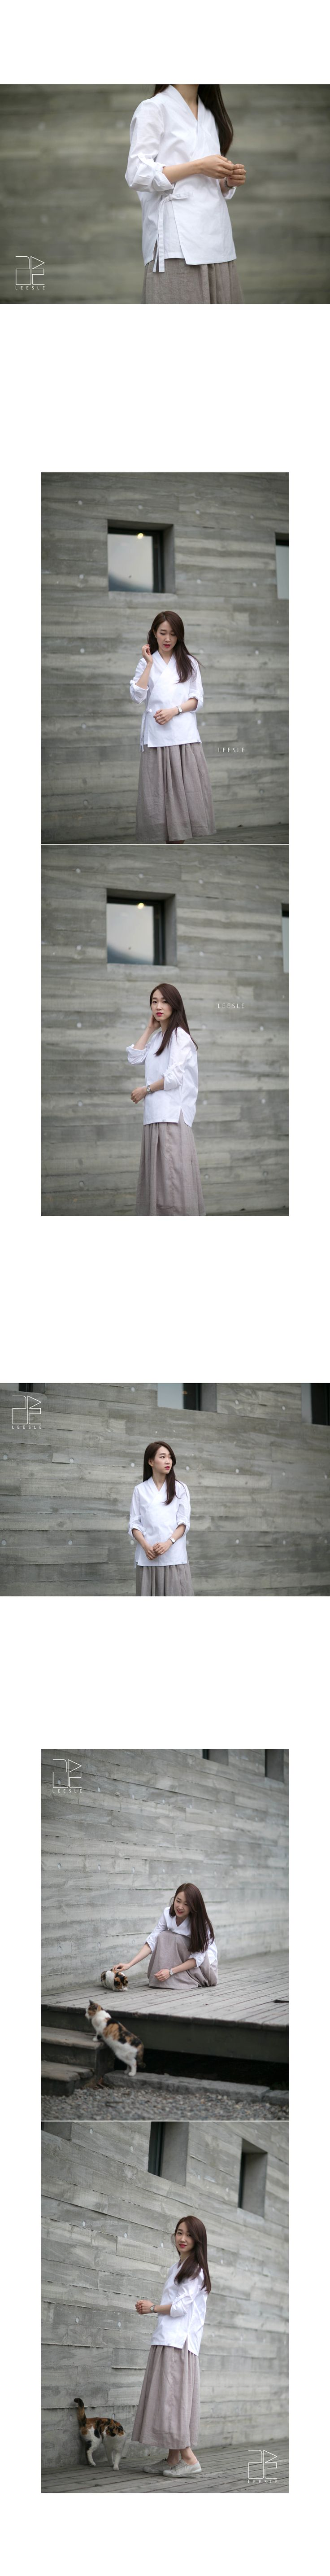 Reformed Hanbok by 리슬「Leesle」 #modernlook #dress #reformed #traditional #costume #hanbok #casuals